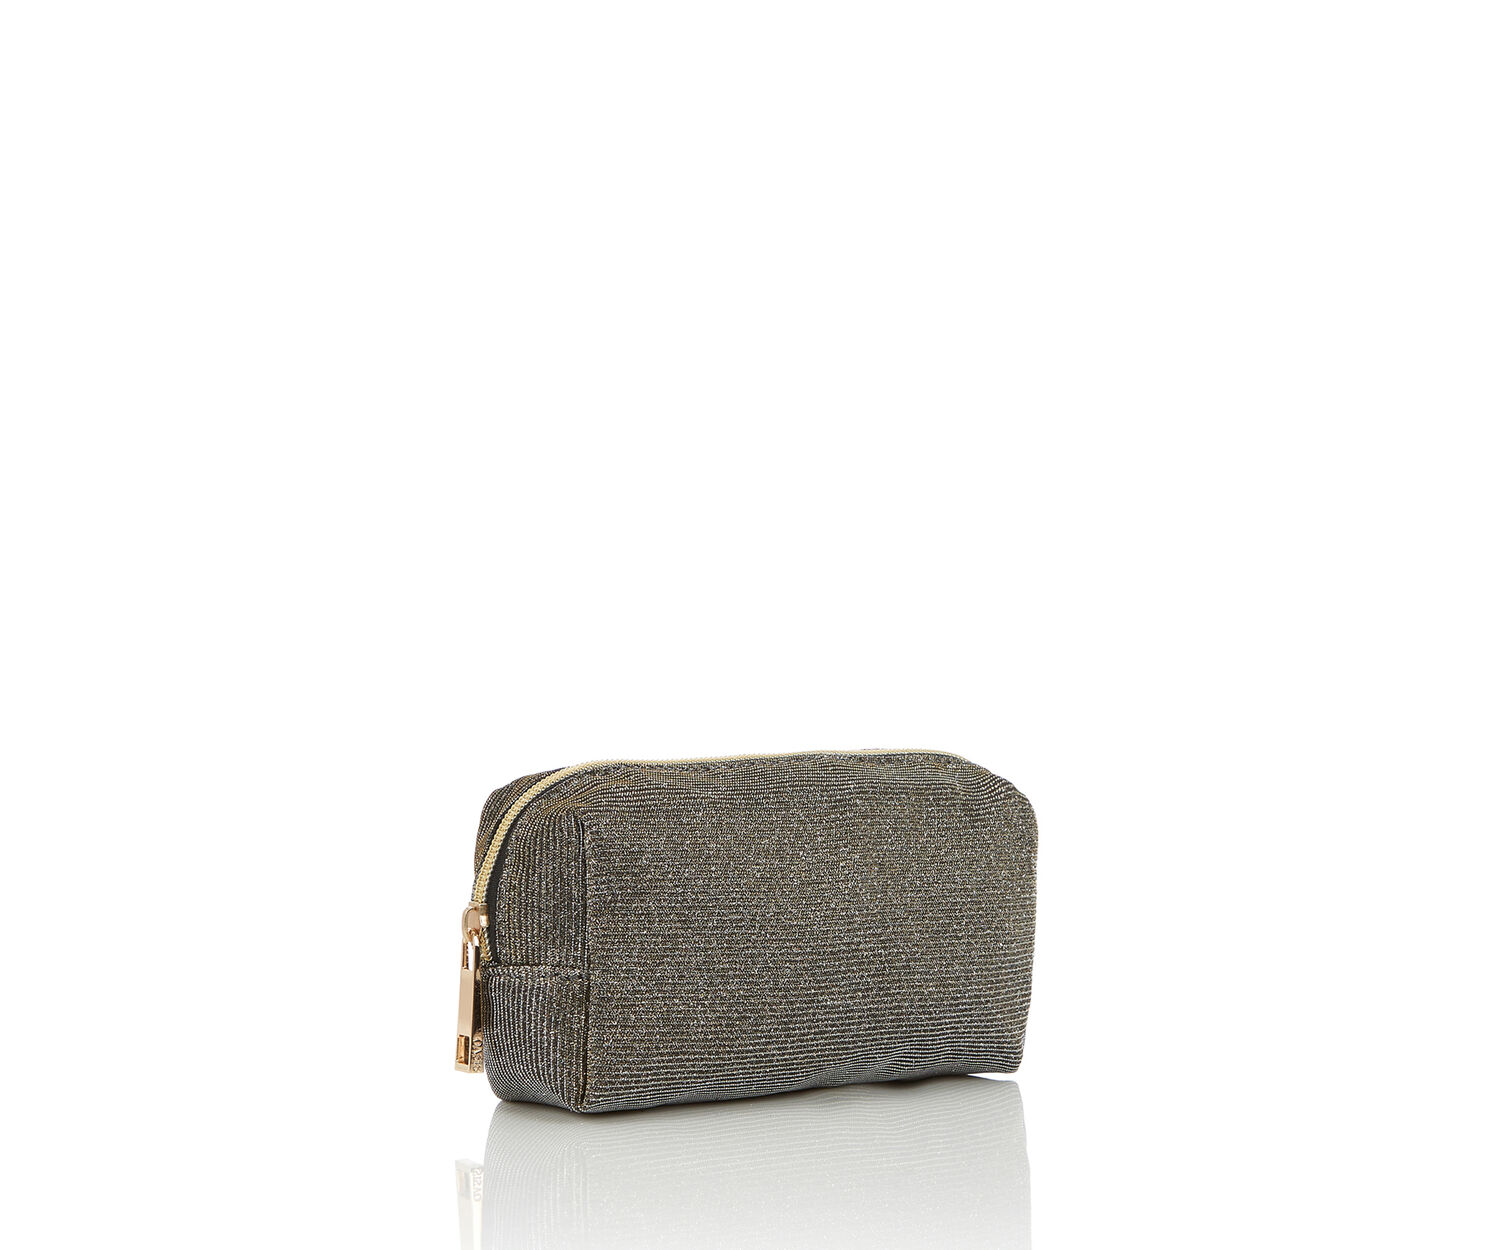 Oasis, GLITTER COSMETIC CASE Gold 1